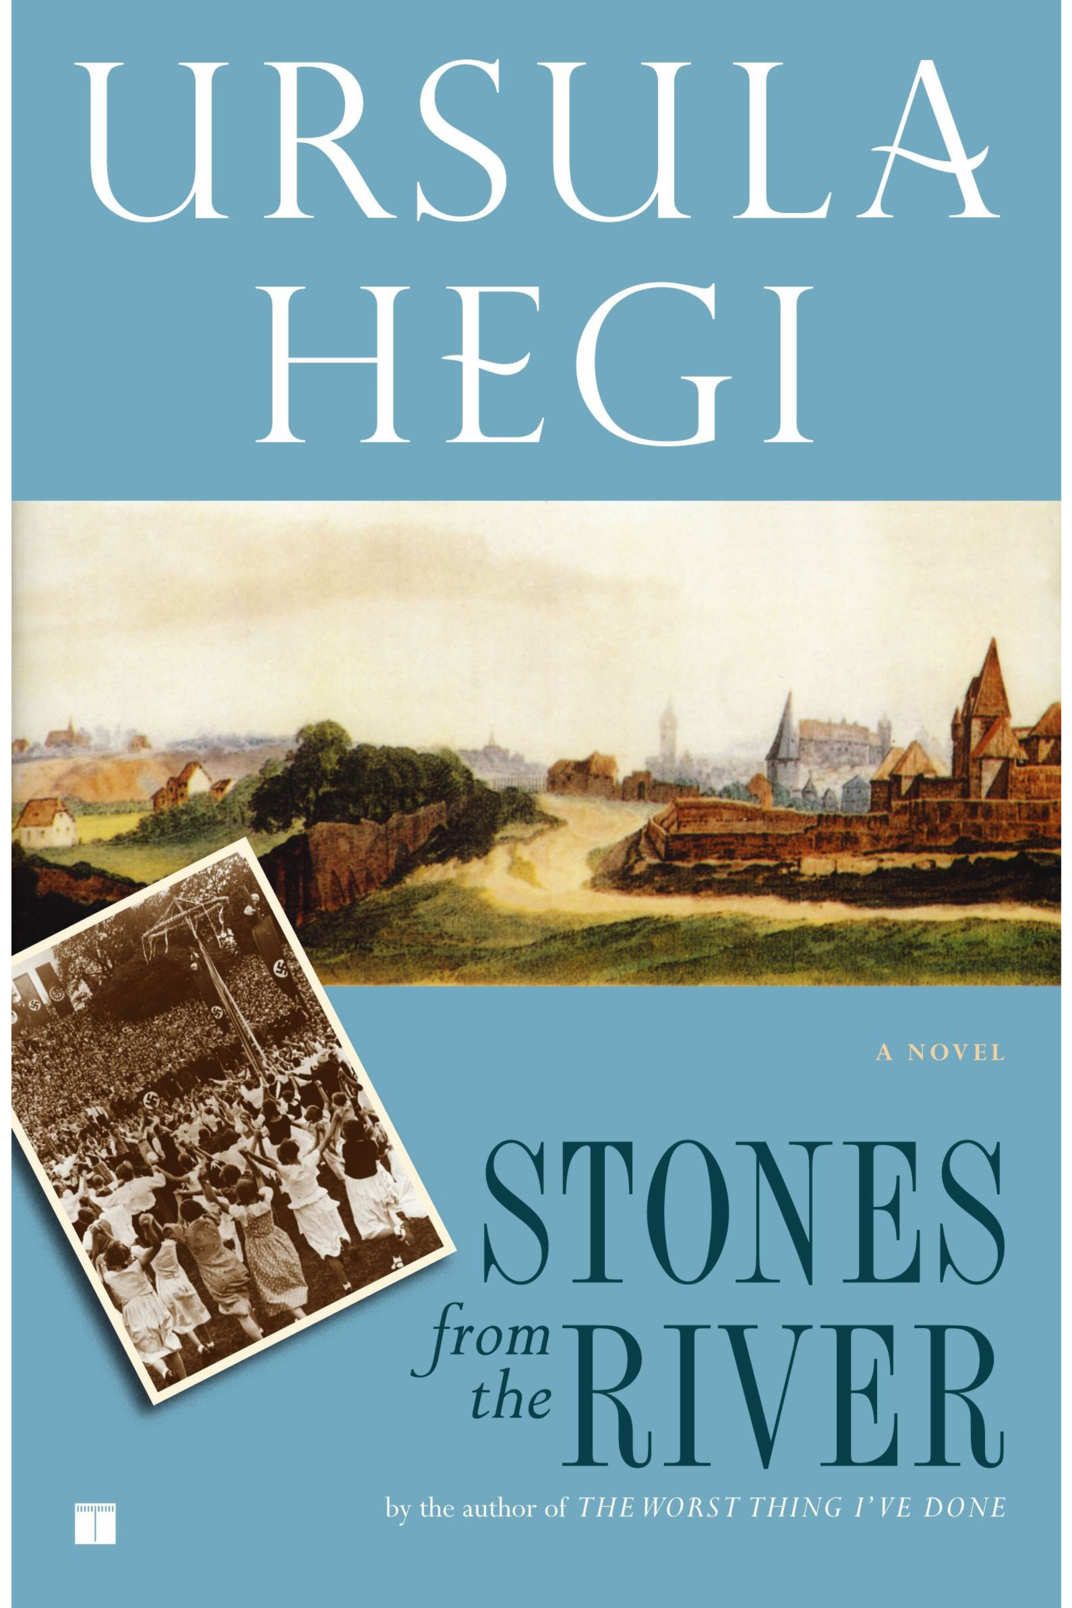 """""""Stones From the River,"""" by Ursula Hegi"""